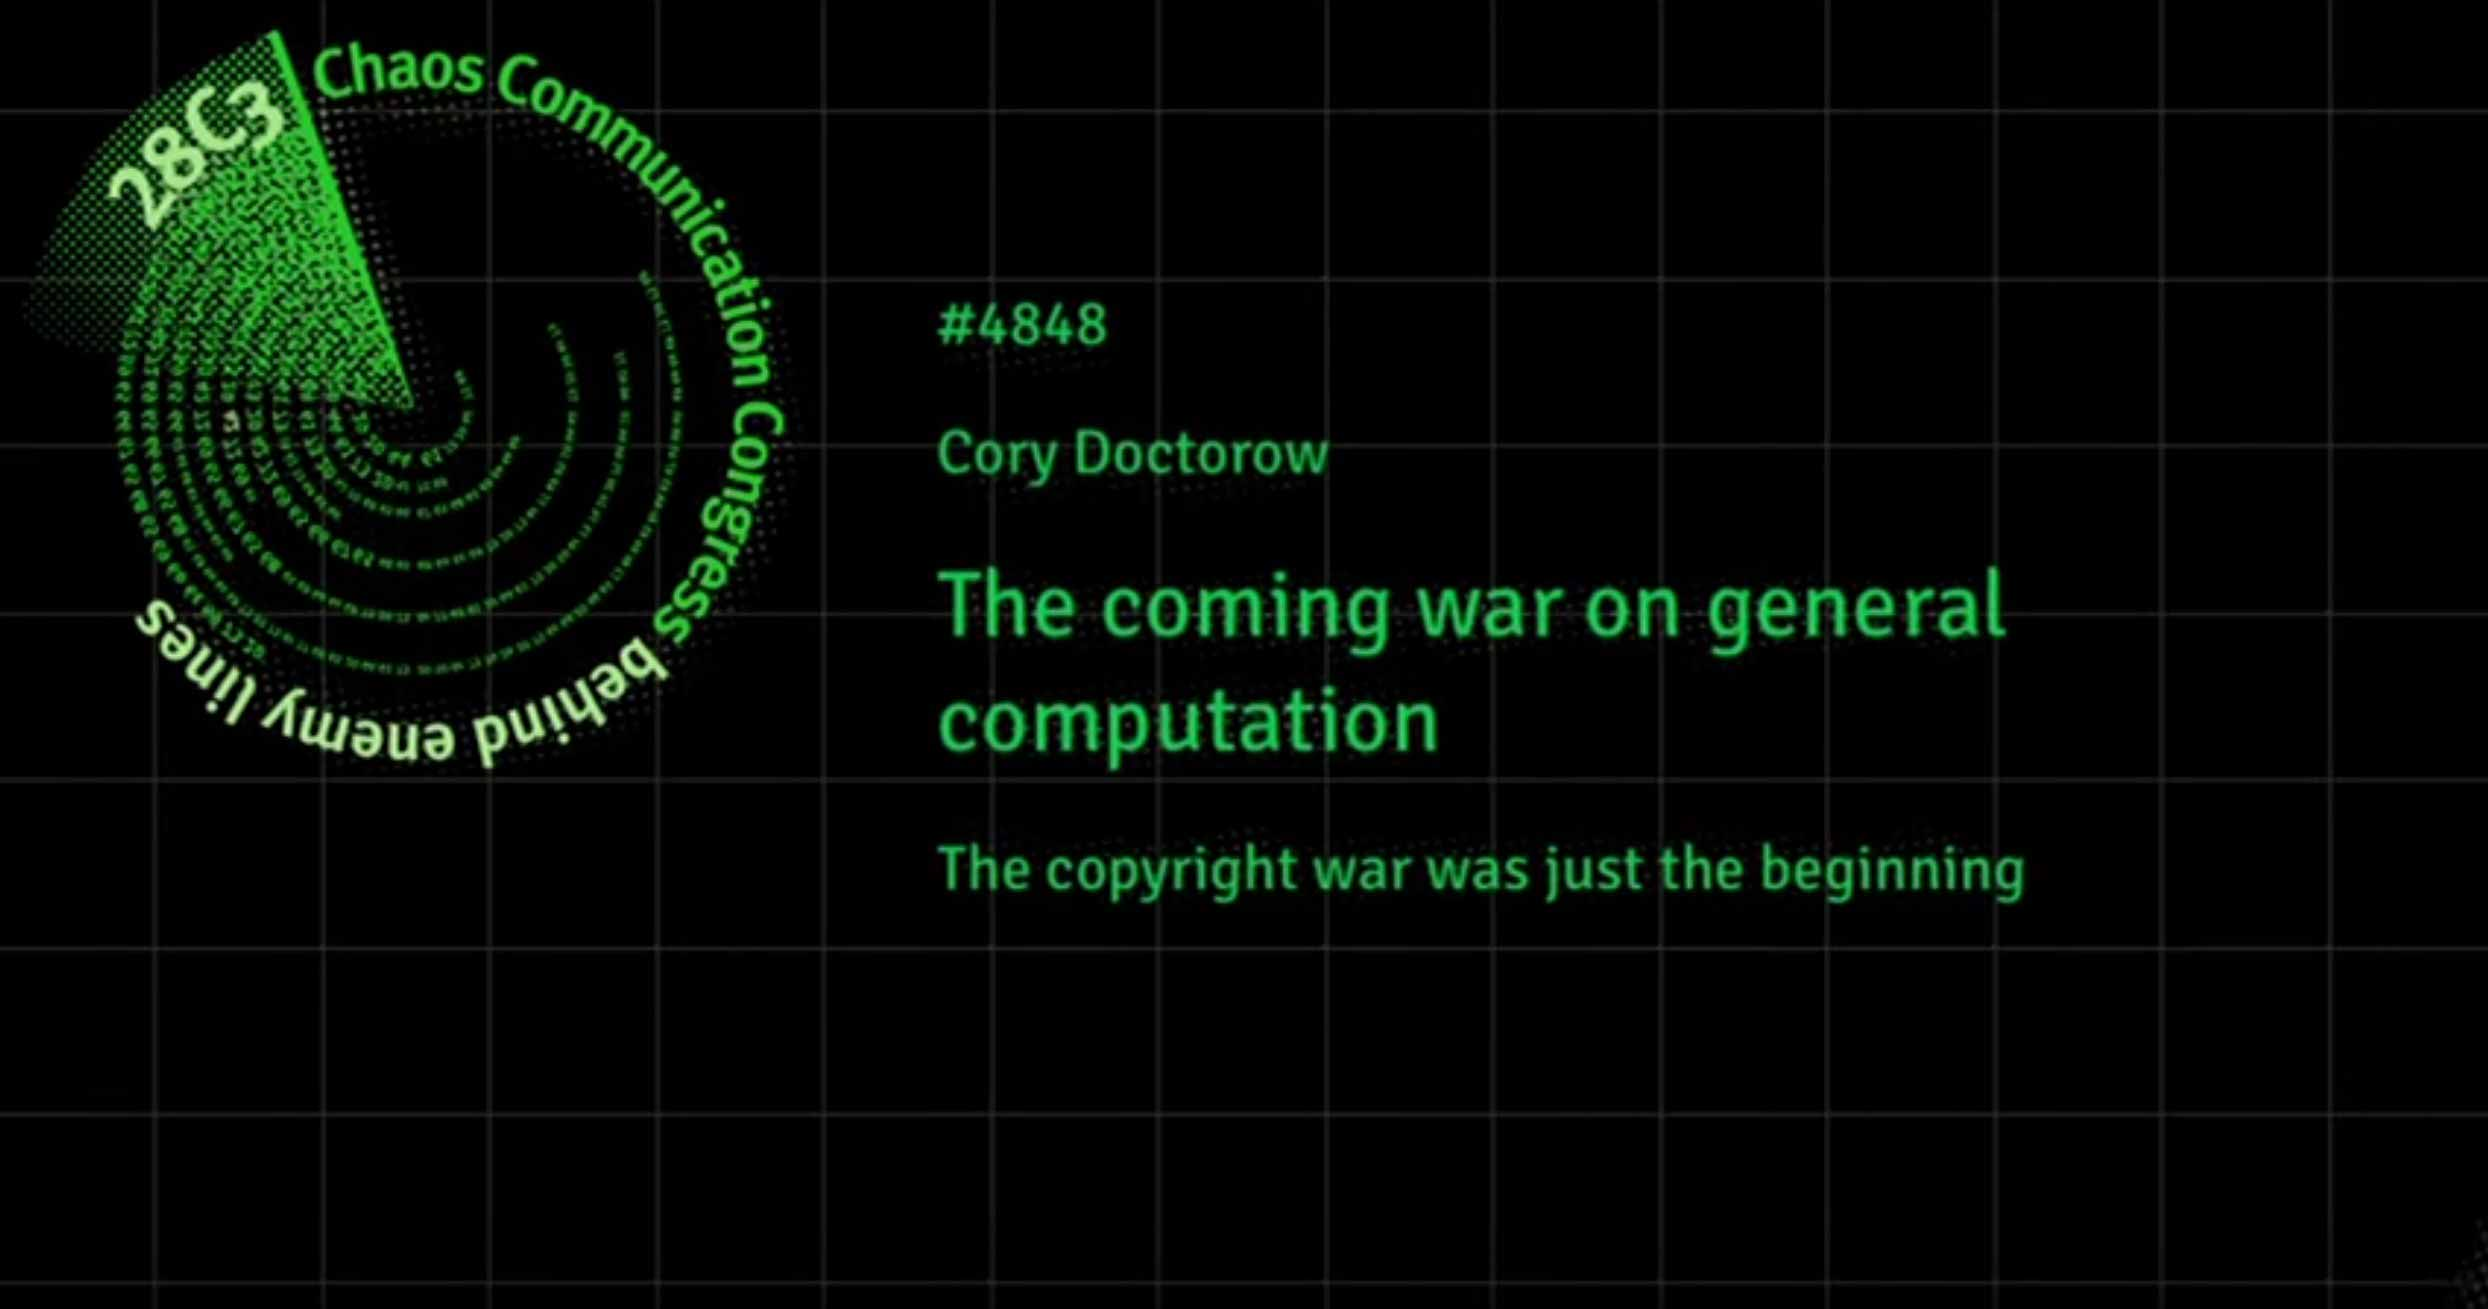 The coming war on general computation